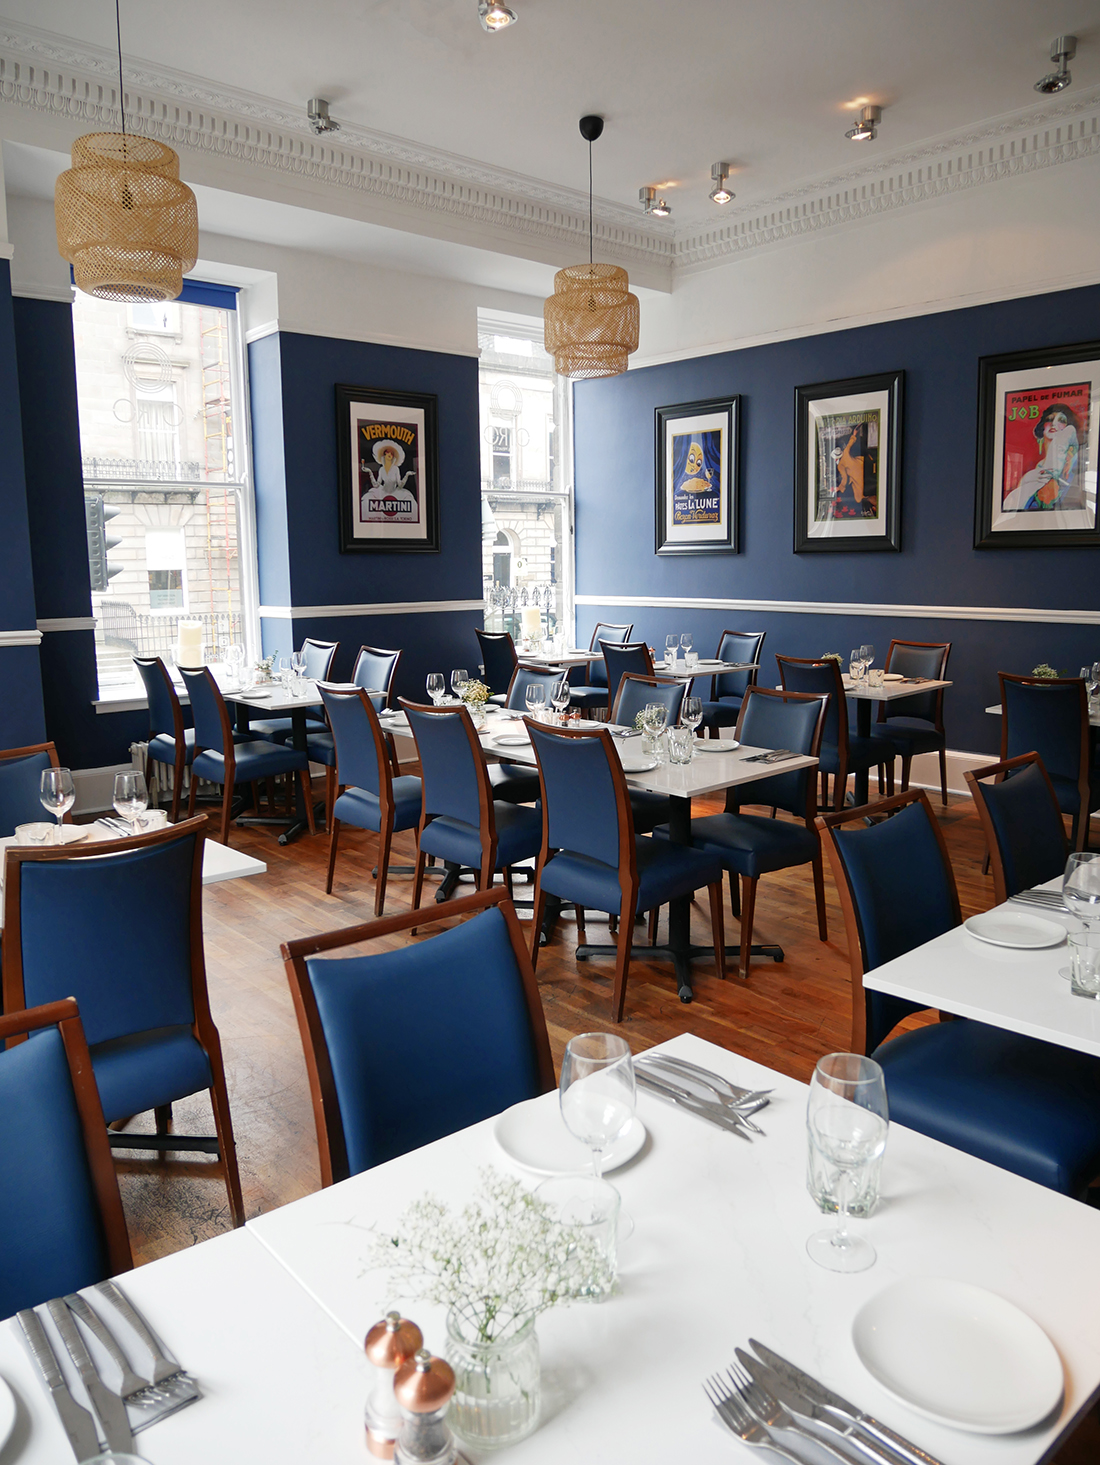 otro restaurant edinburgh main dining room.jpg